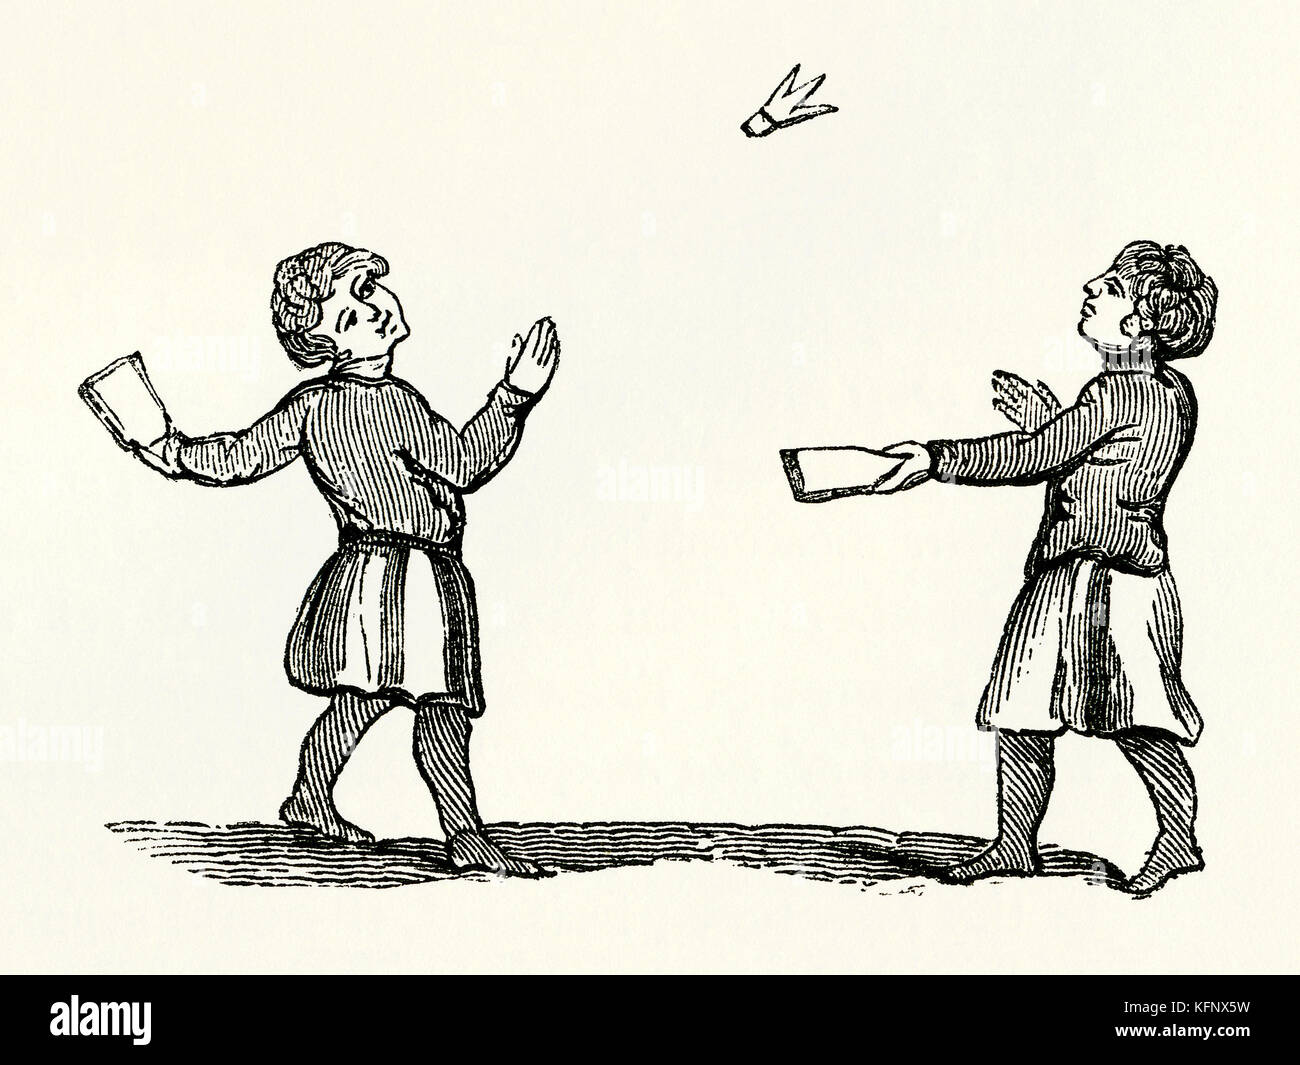 An old Medieval engraving of Battledore and shuttlecock, or jeu de volant, an early game related to modern badminton - Stock Image